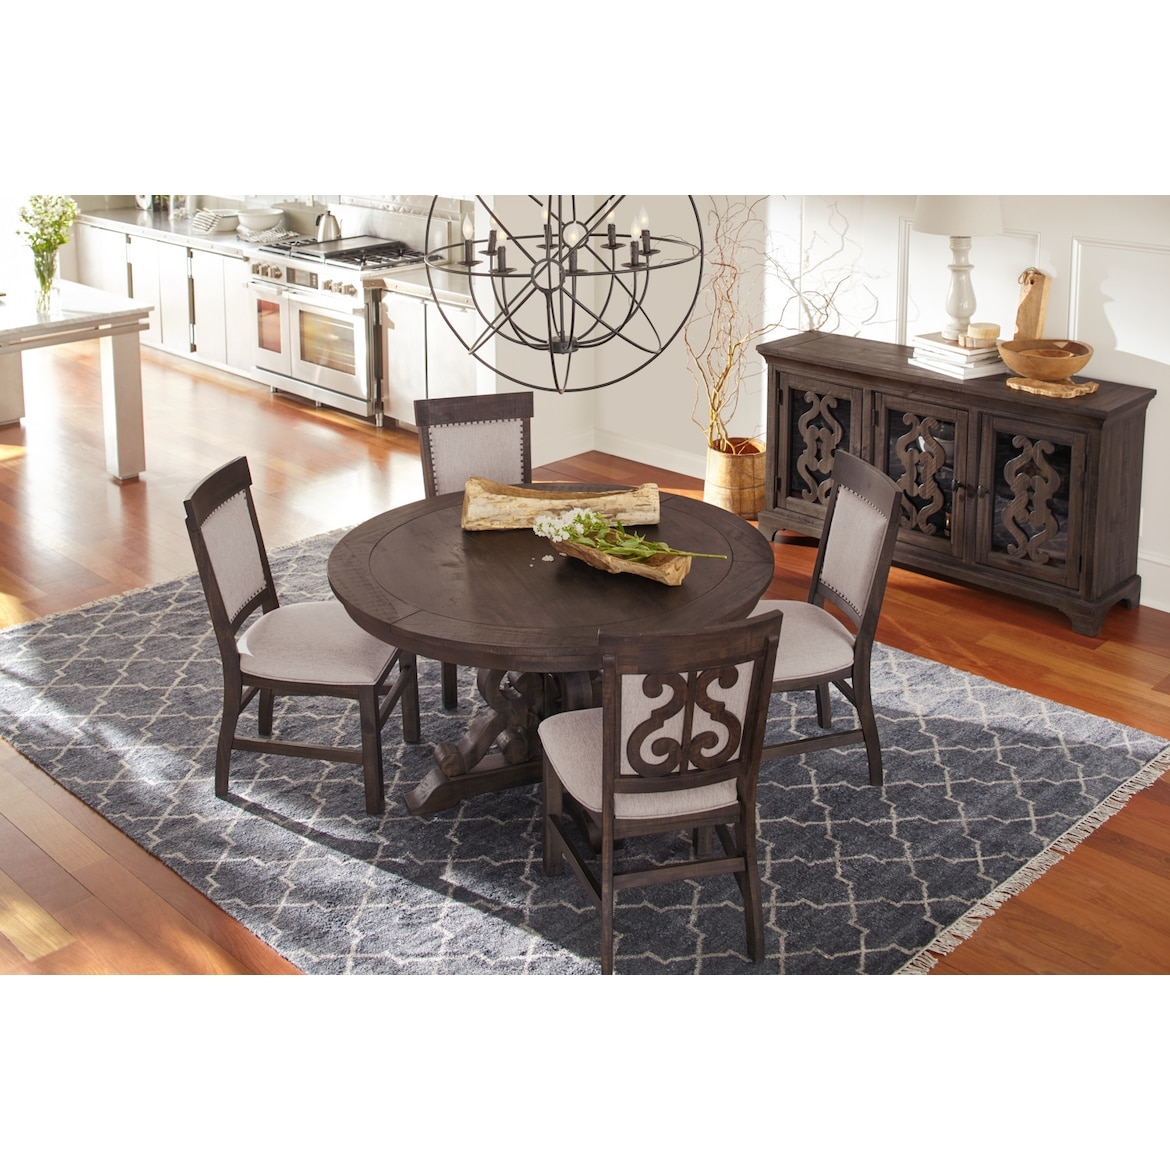 Side Table For Dining Room: Charthouse Round Dining Table And 4 Upholstered Side